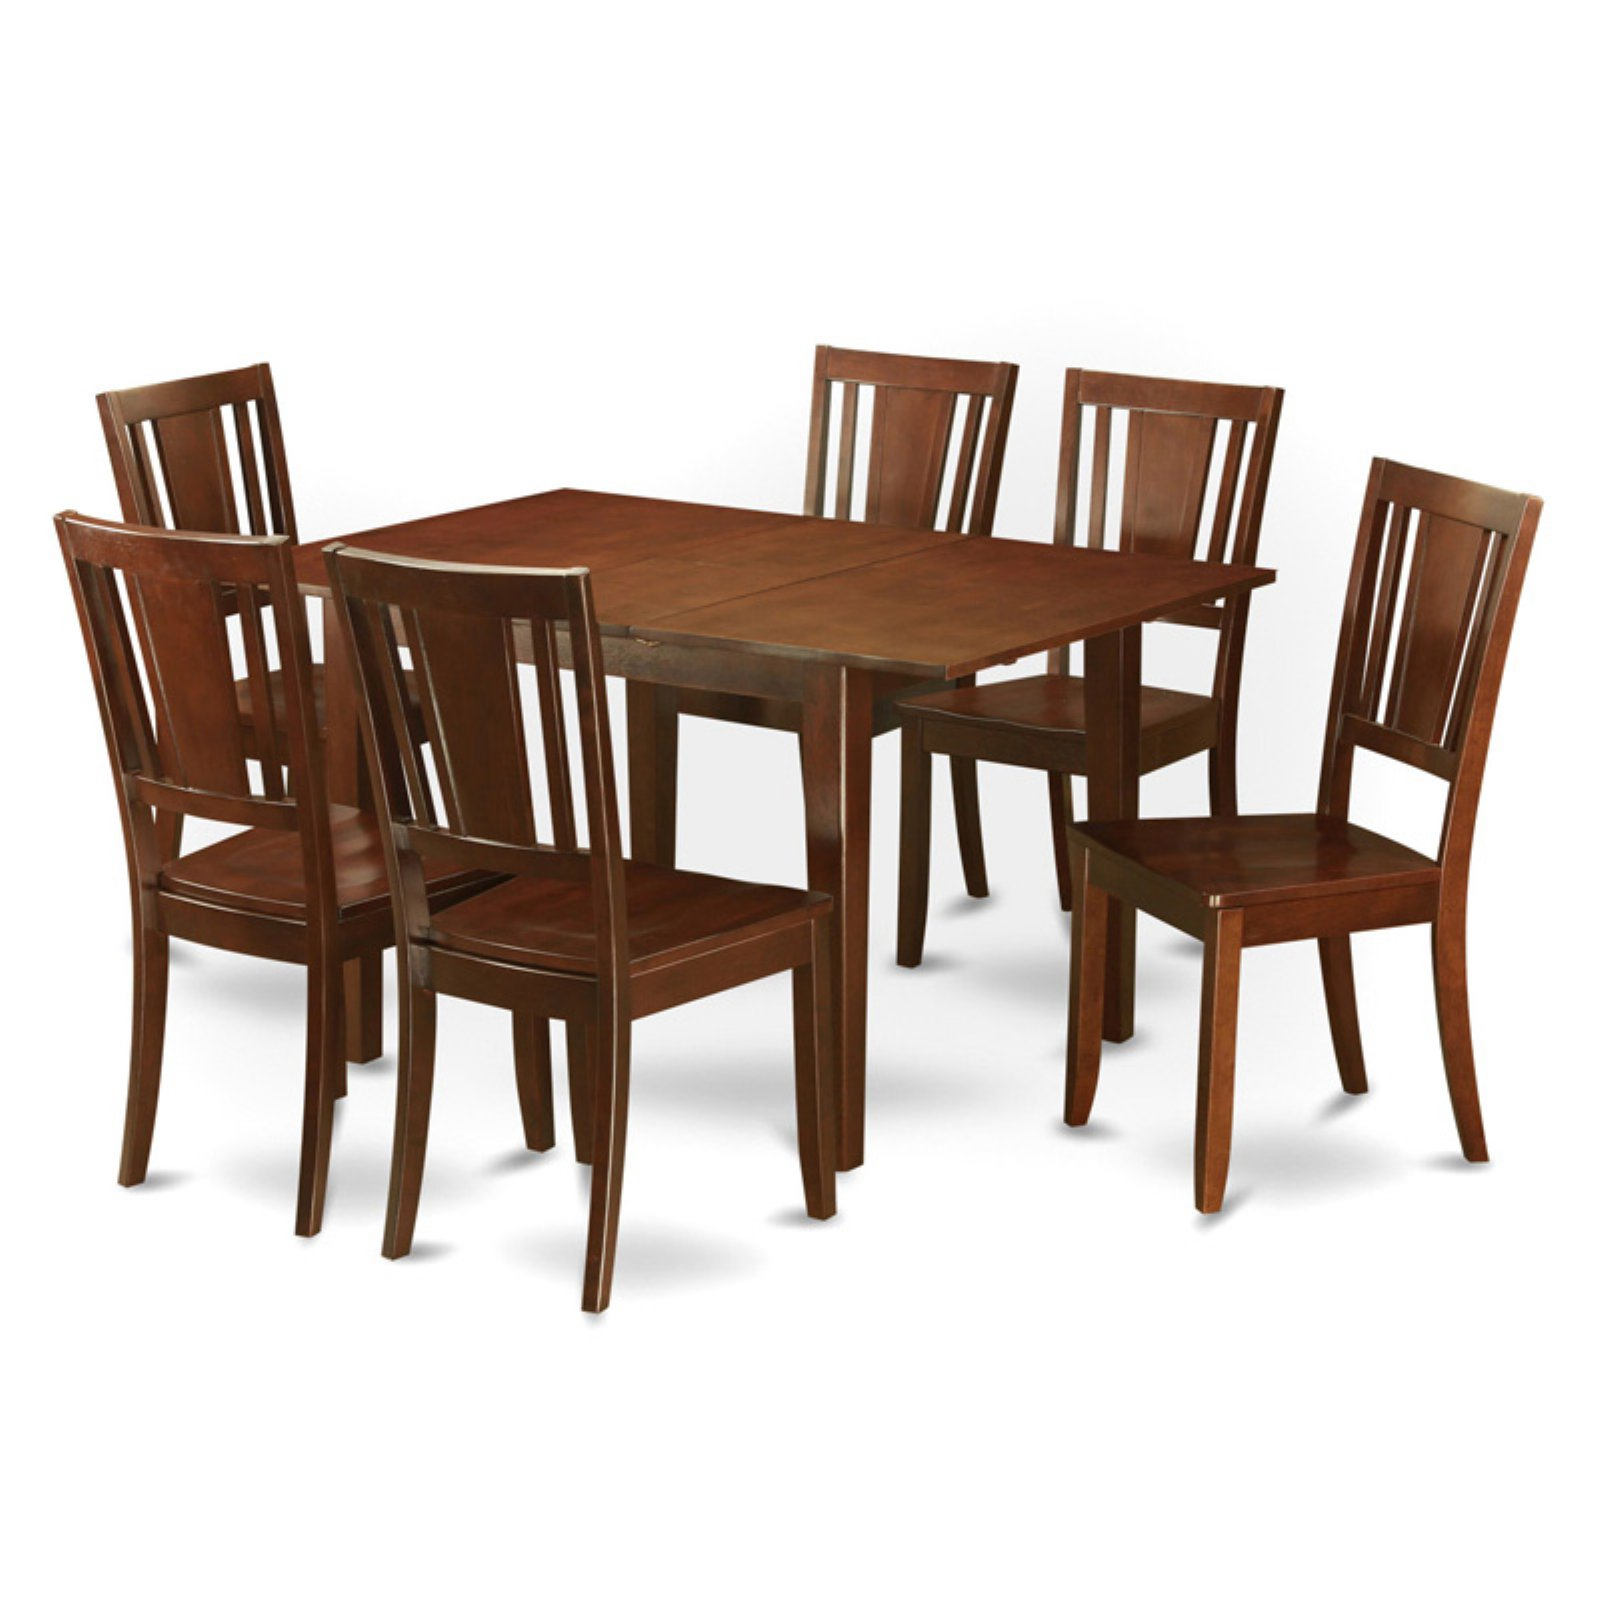 East West Furniture Milan 7 Piece Rectangular Dining Table Set with Dudley Chairs